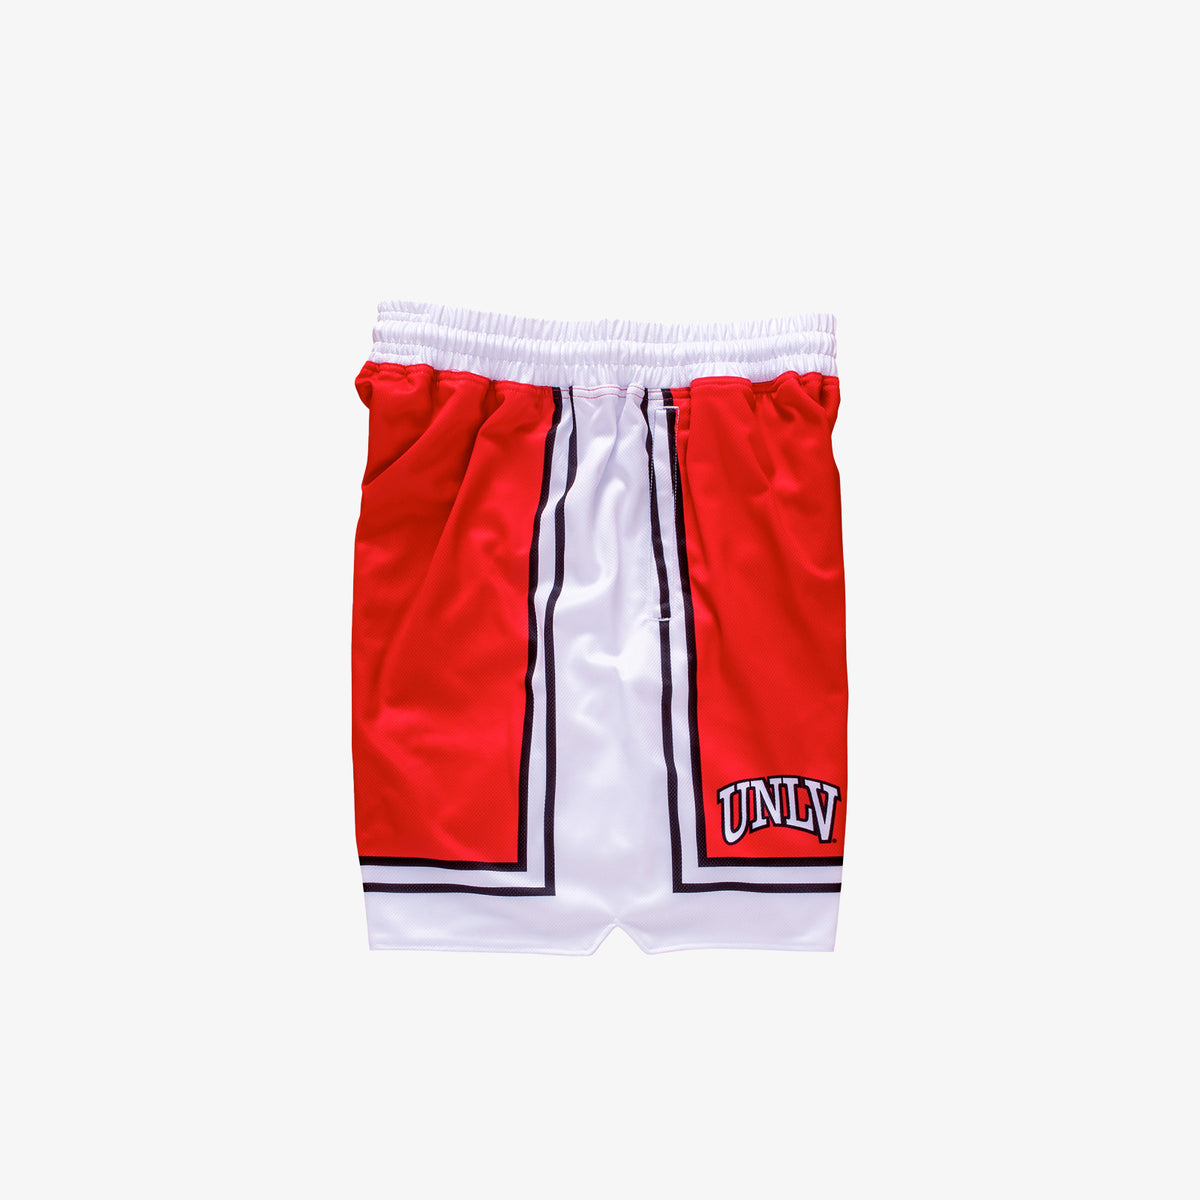 UNLV 1989-1990 Retro College Basketball Shorts - Red